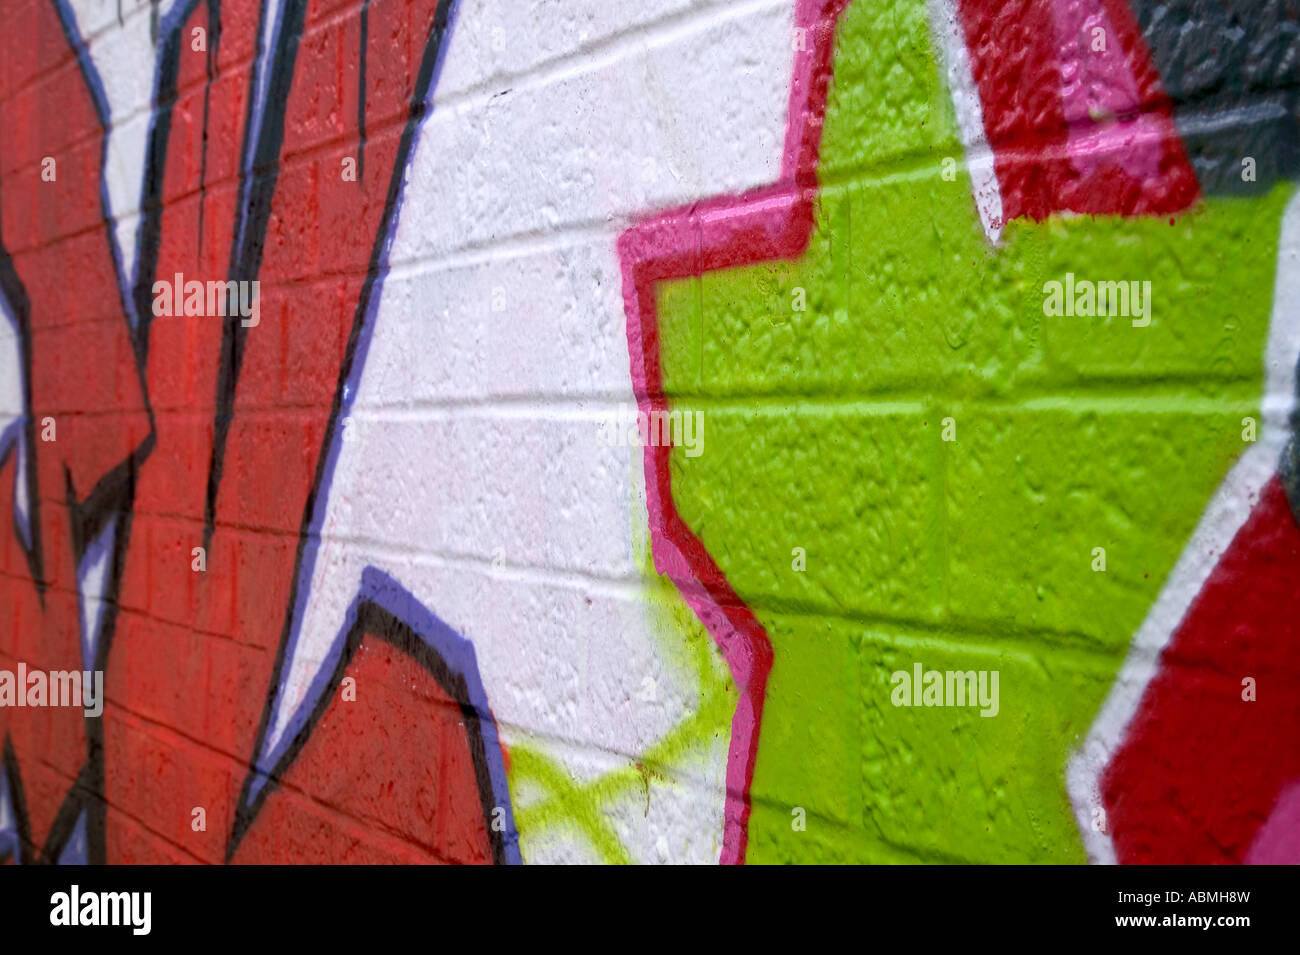 Graffiti sprayed on a brick wall side perspective - Stock Image